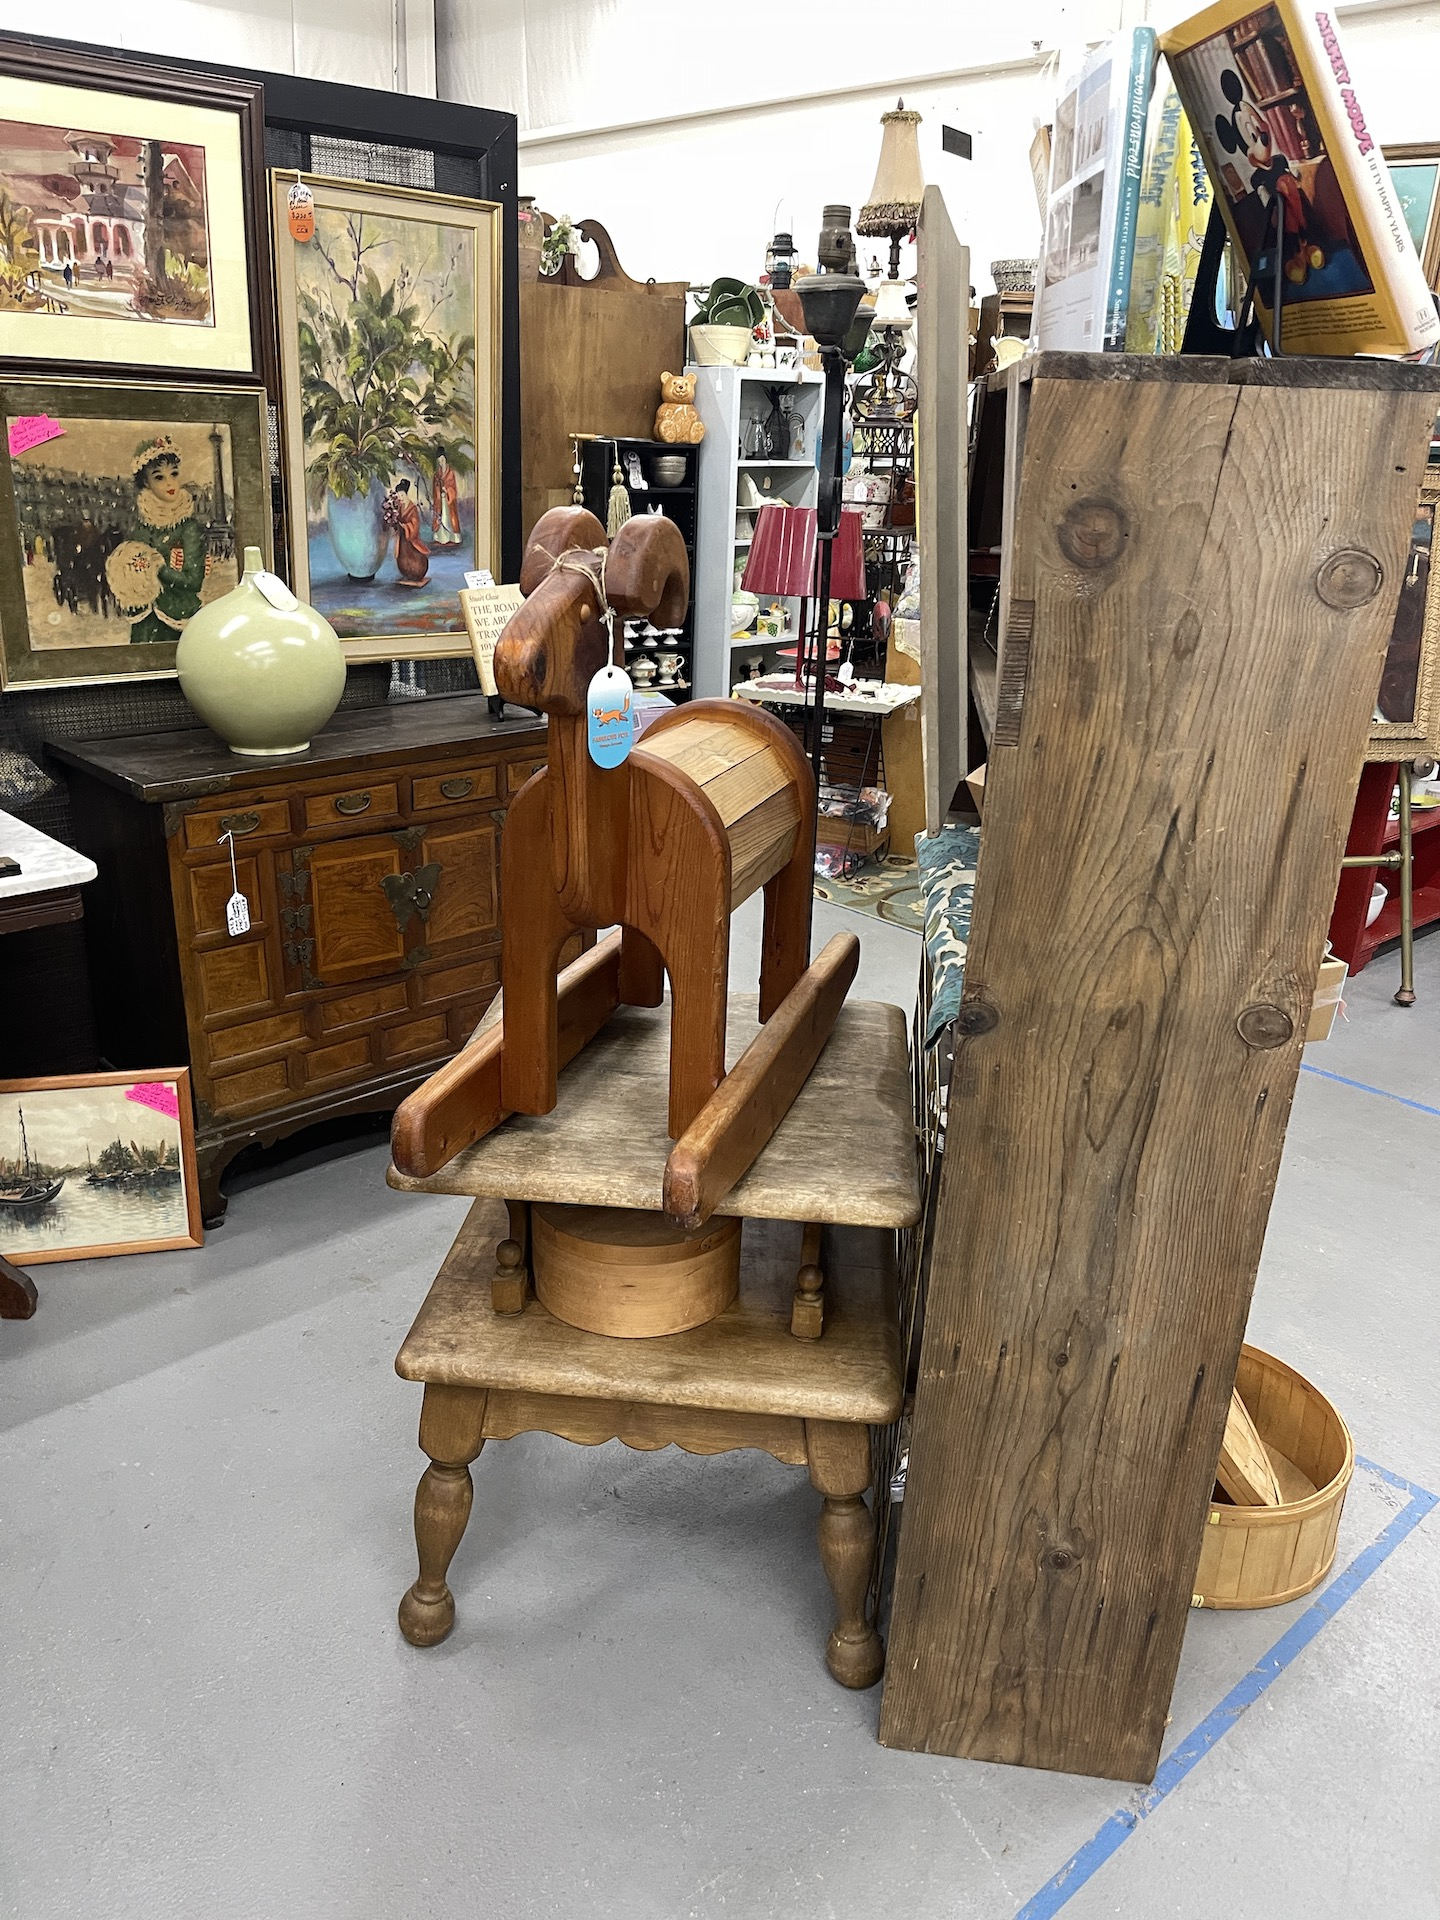 Booth-with-rocking-horse